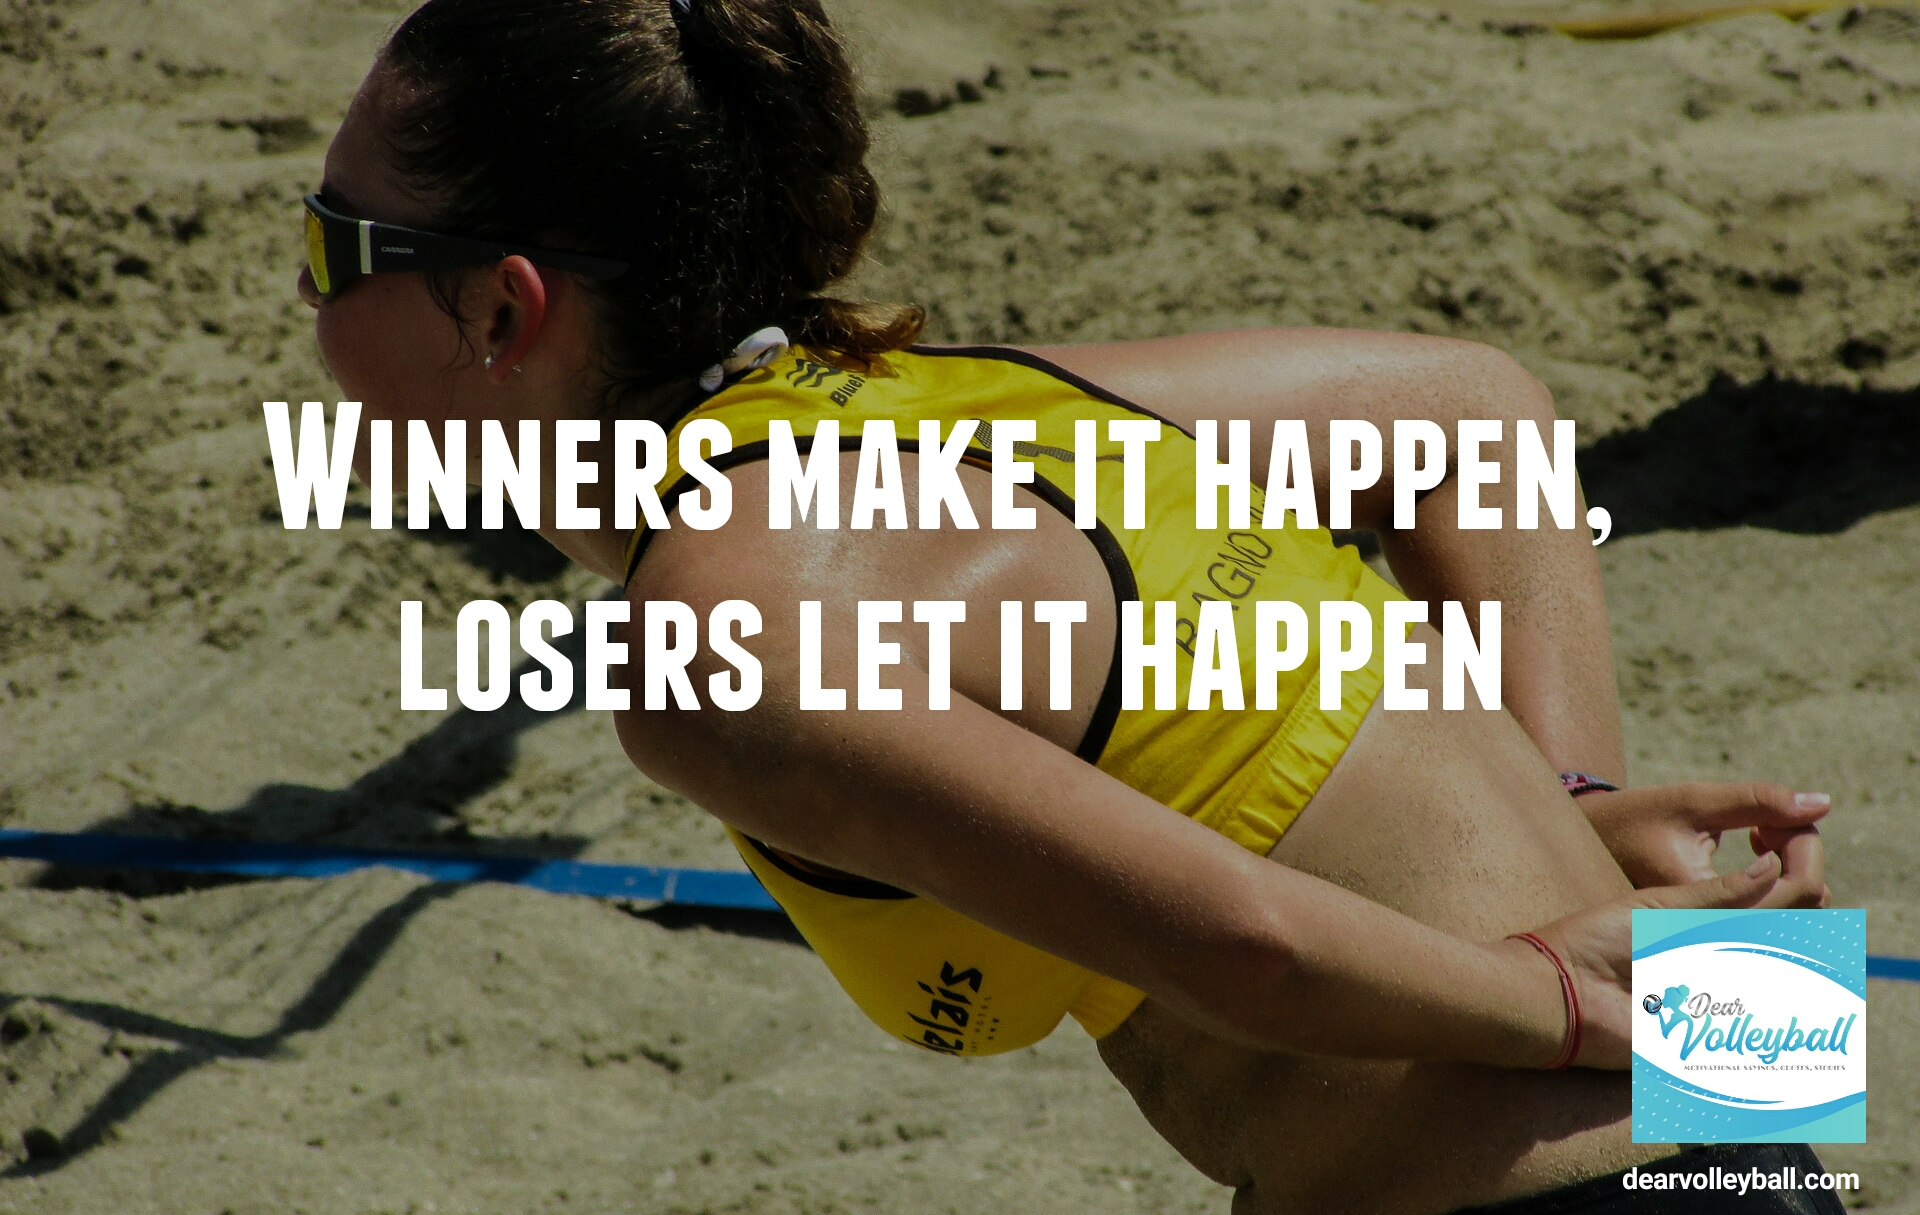 Winners make it happen. Losers let it happen and other motivating quotes on DearVolleyball.com